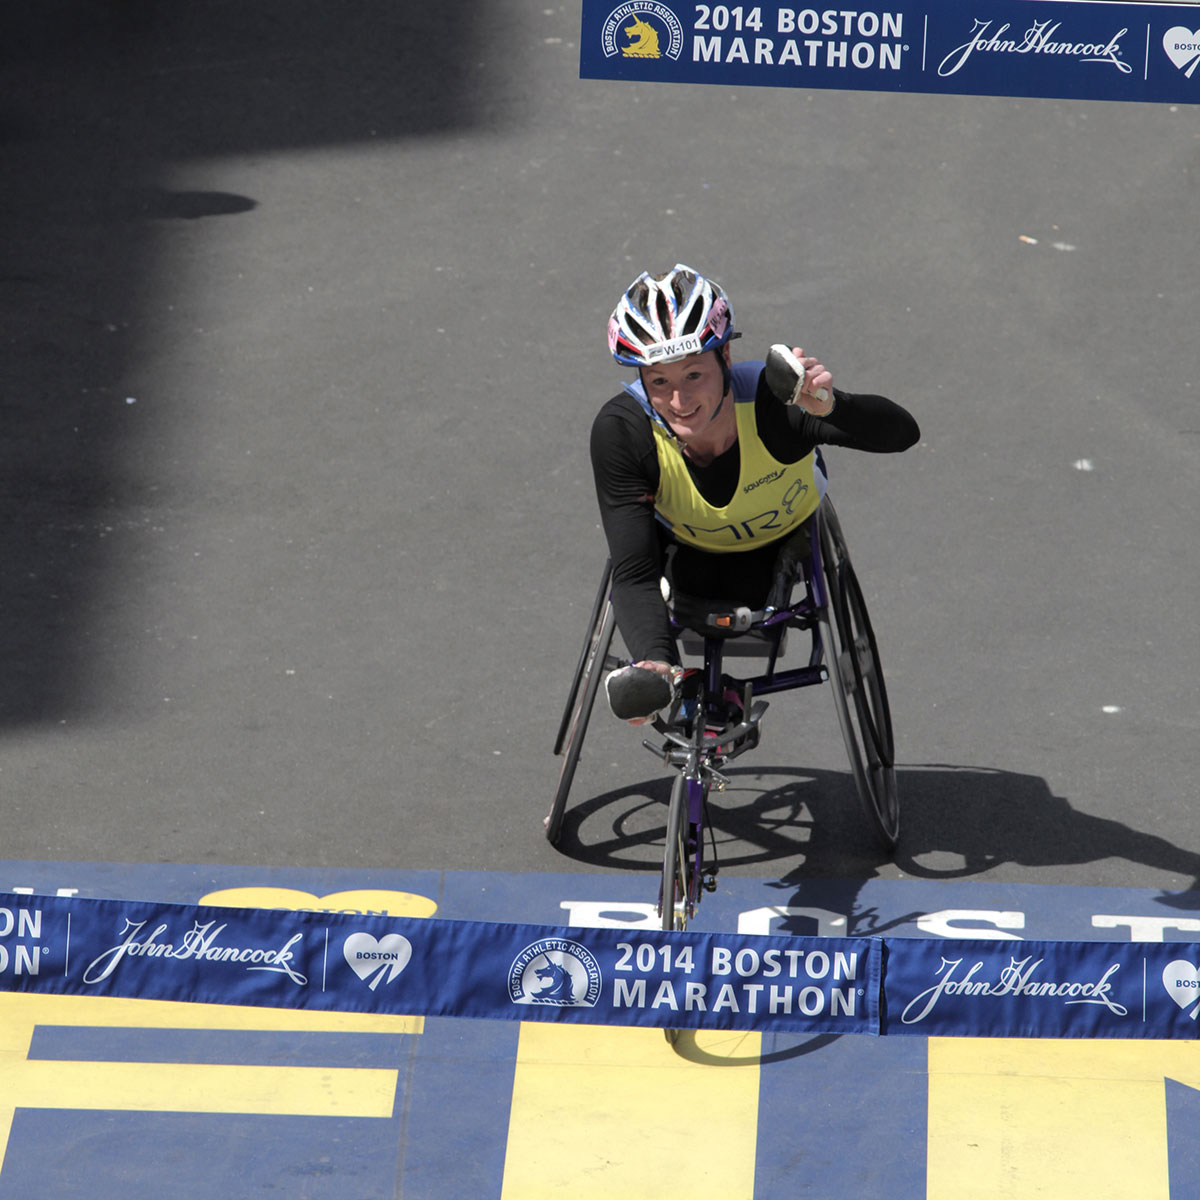 Tatyana McFadden crossing the finish line for her second consecutive Boston Marathon win.